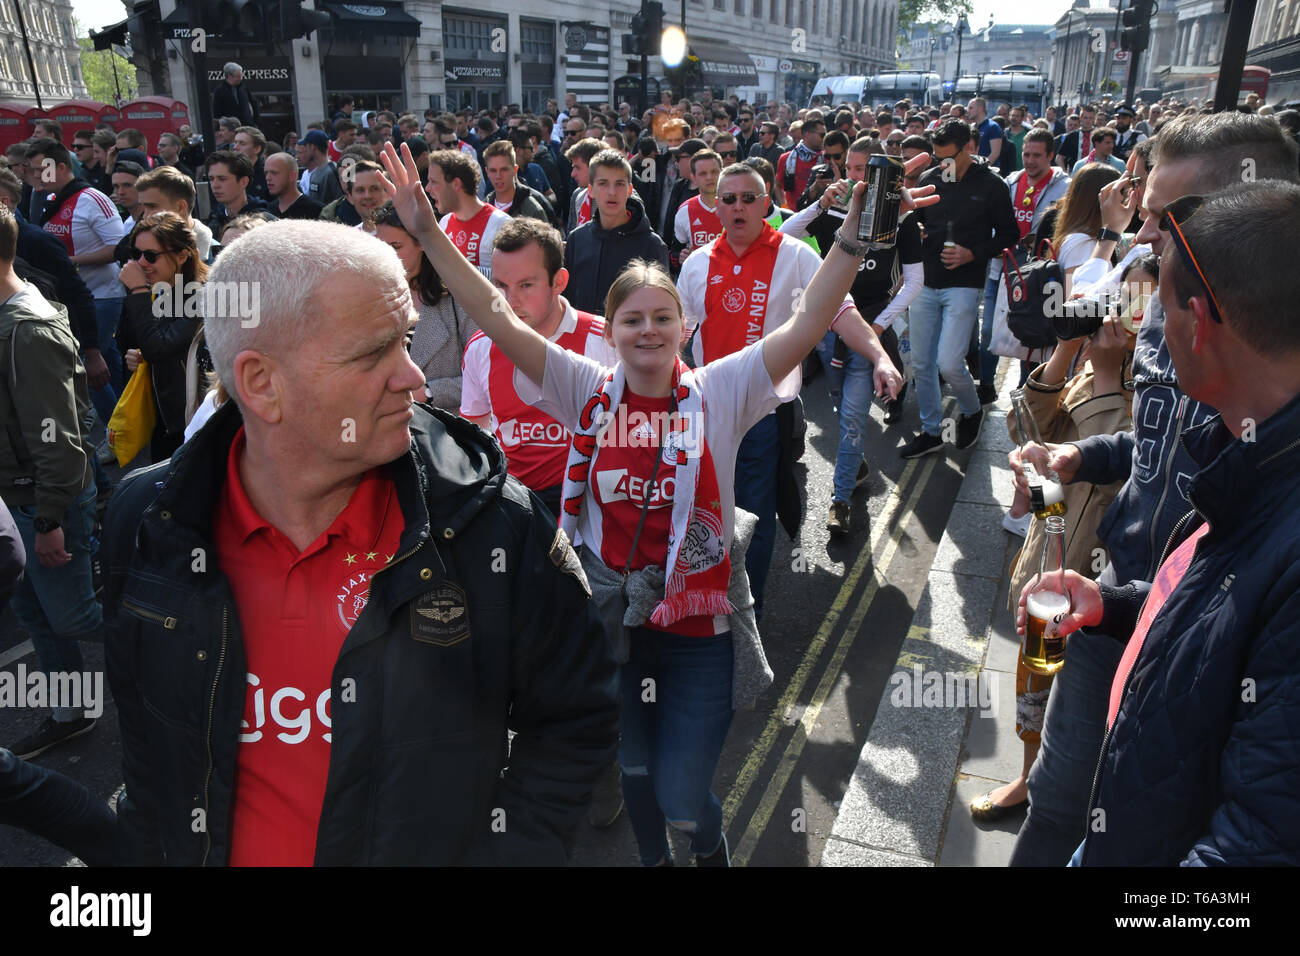 London, UK. 30th Apr 2019. AFC Ajax (ultras football)supporters march and salute in Charing Cross road, London, UK on 30 April 2019. Credit: Picture Capital/Alamy Live News Stock Photo